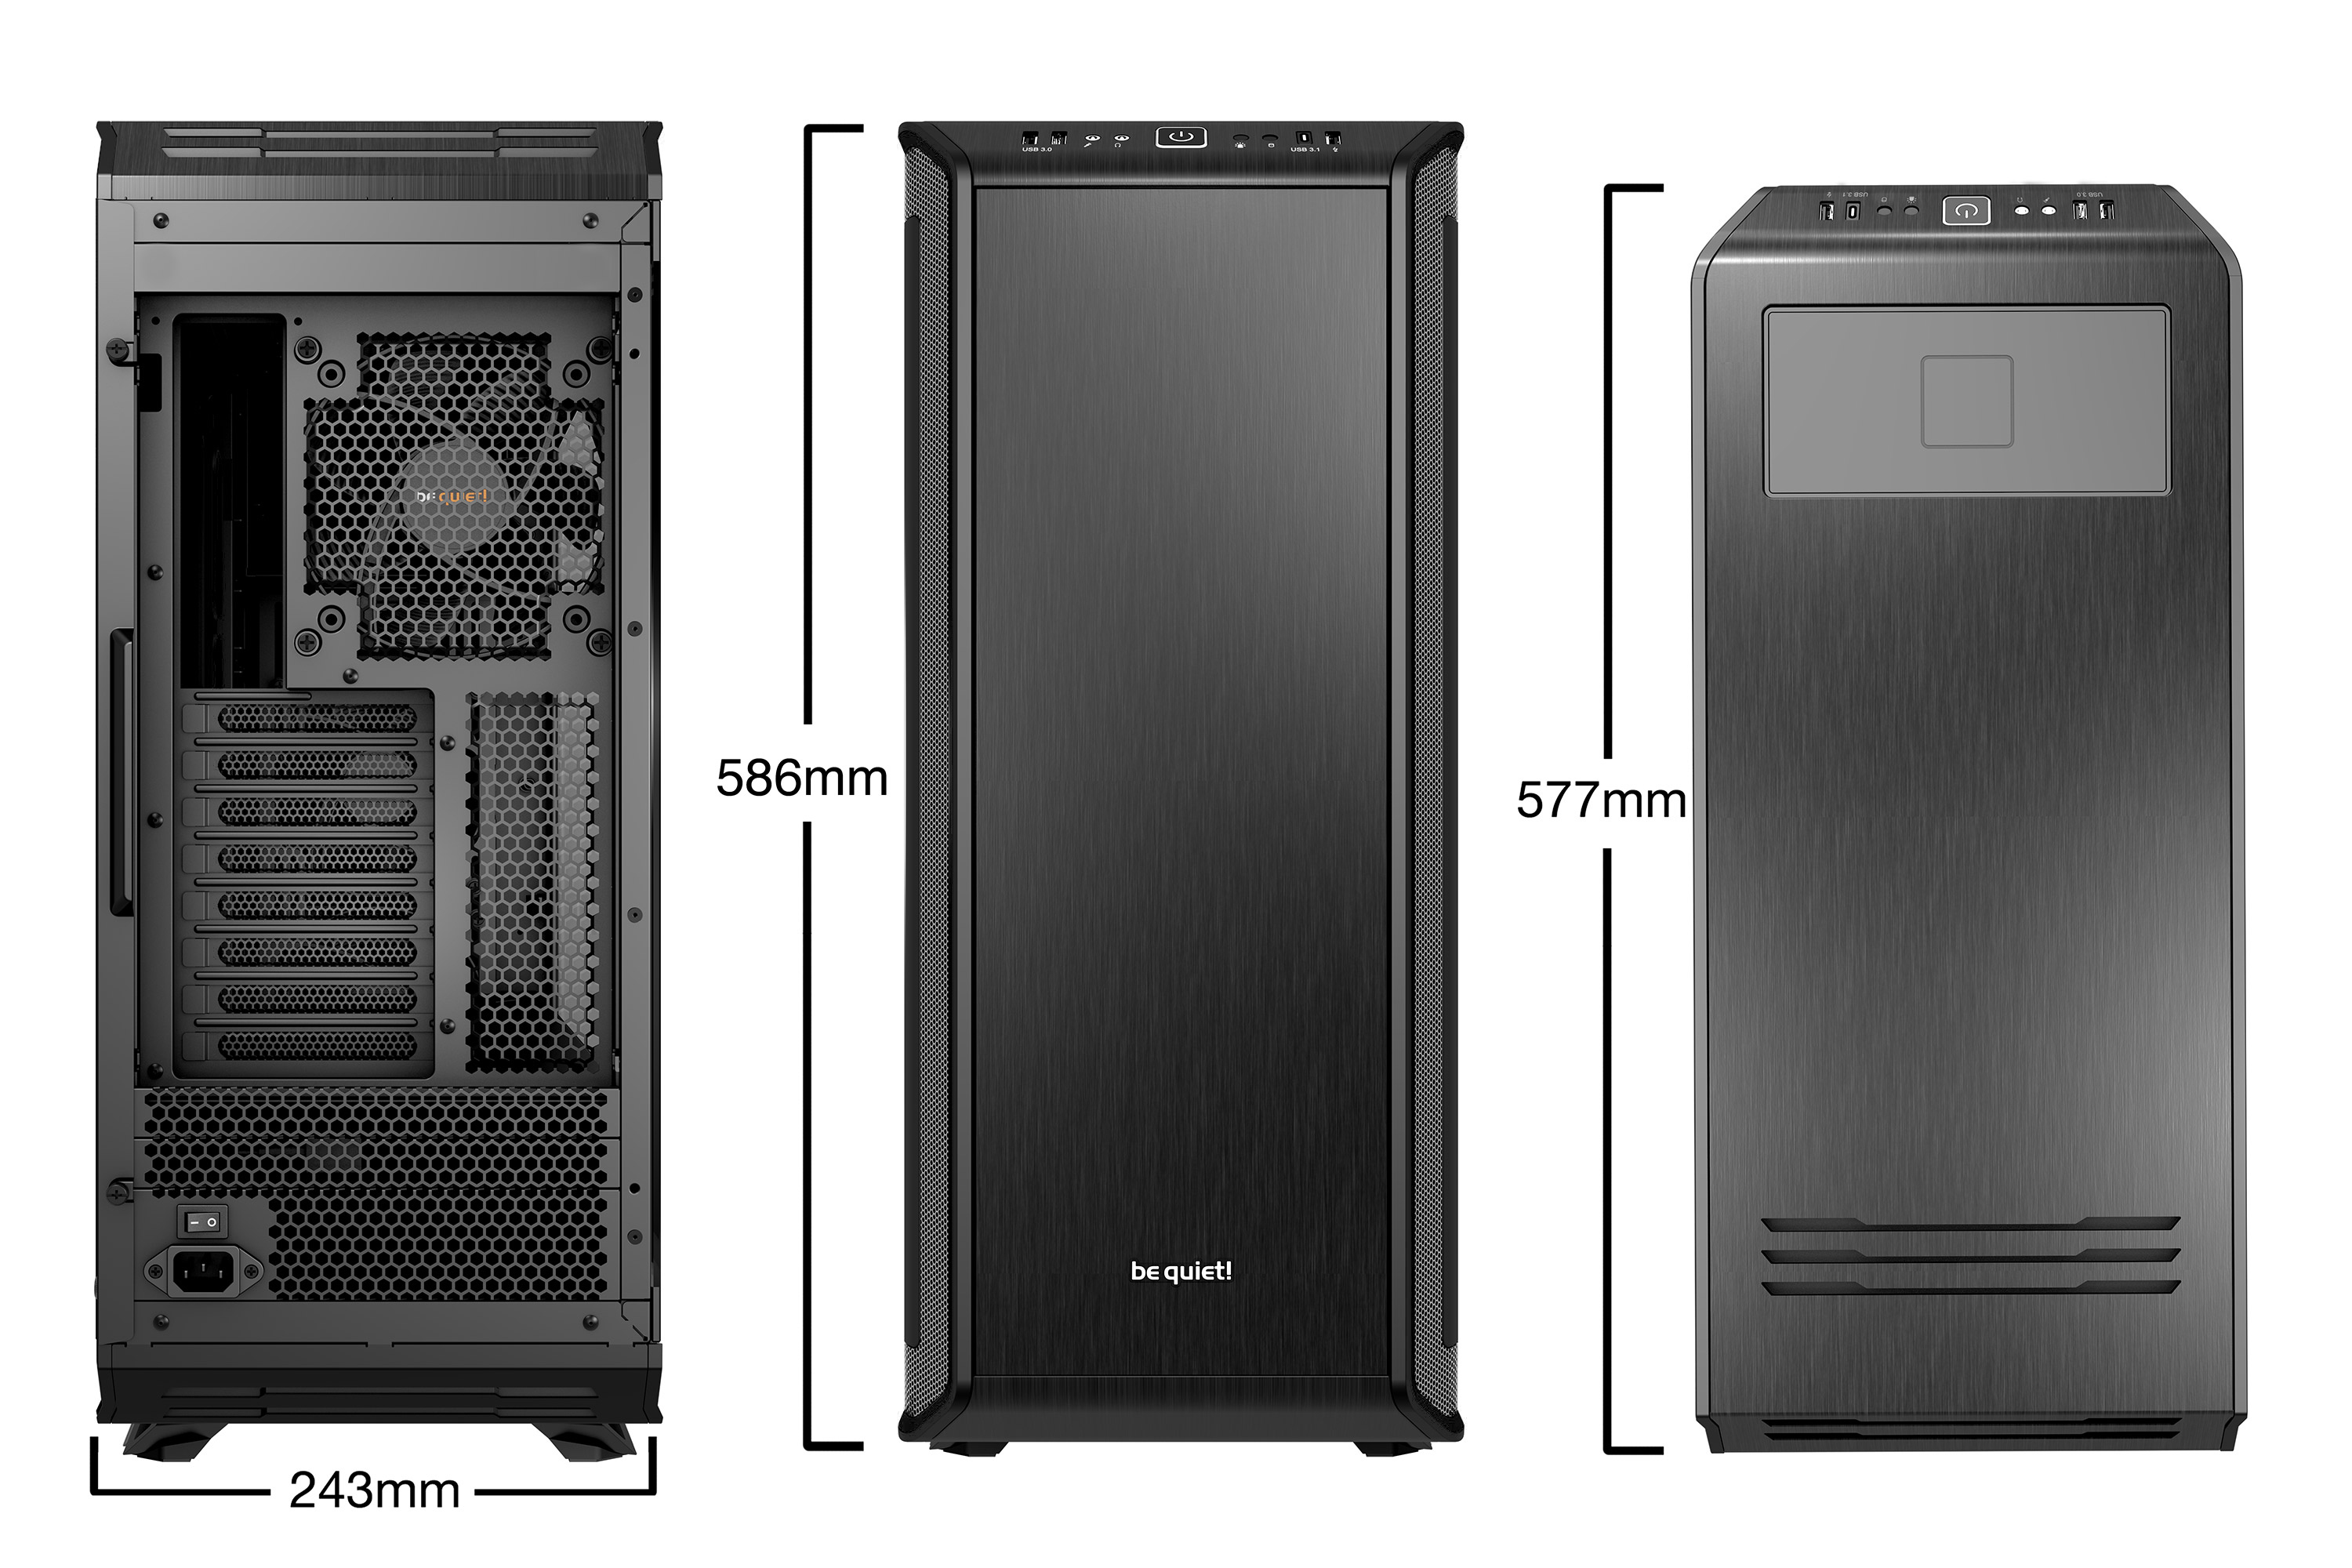 be quiet! Dark Base Pro 900 Window Black rev.2, 577 x 243 x 585, IO-panel 2x USB 3.0, 1x USB 3.1 Gen2 Type C, HD Audio, 2x 5,25, 5x 3,5, 10x 2,5, inc 3x 140 mm, tripple air channel cooling, Manual fan controller, 4xPWM, 4x3pin, QI Charging option, R